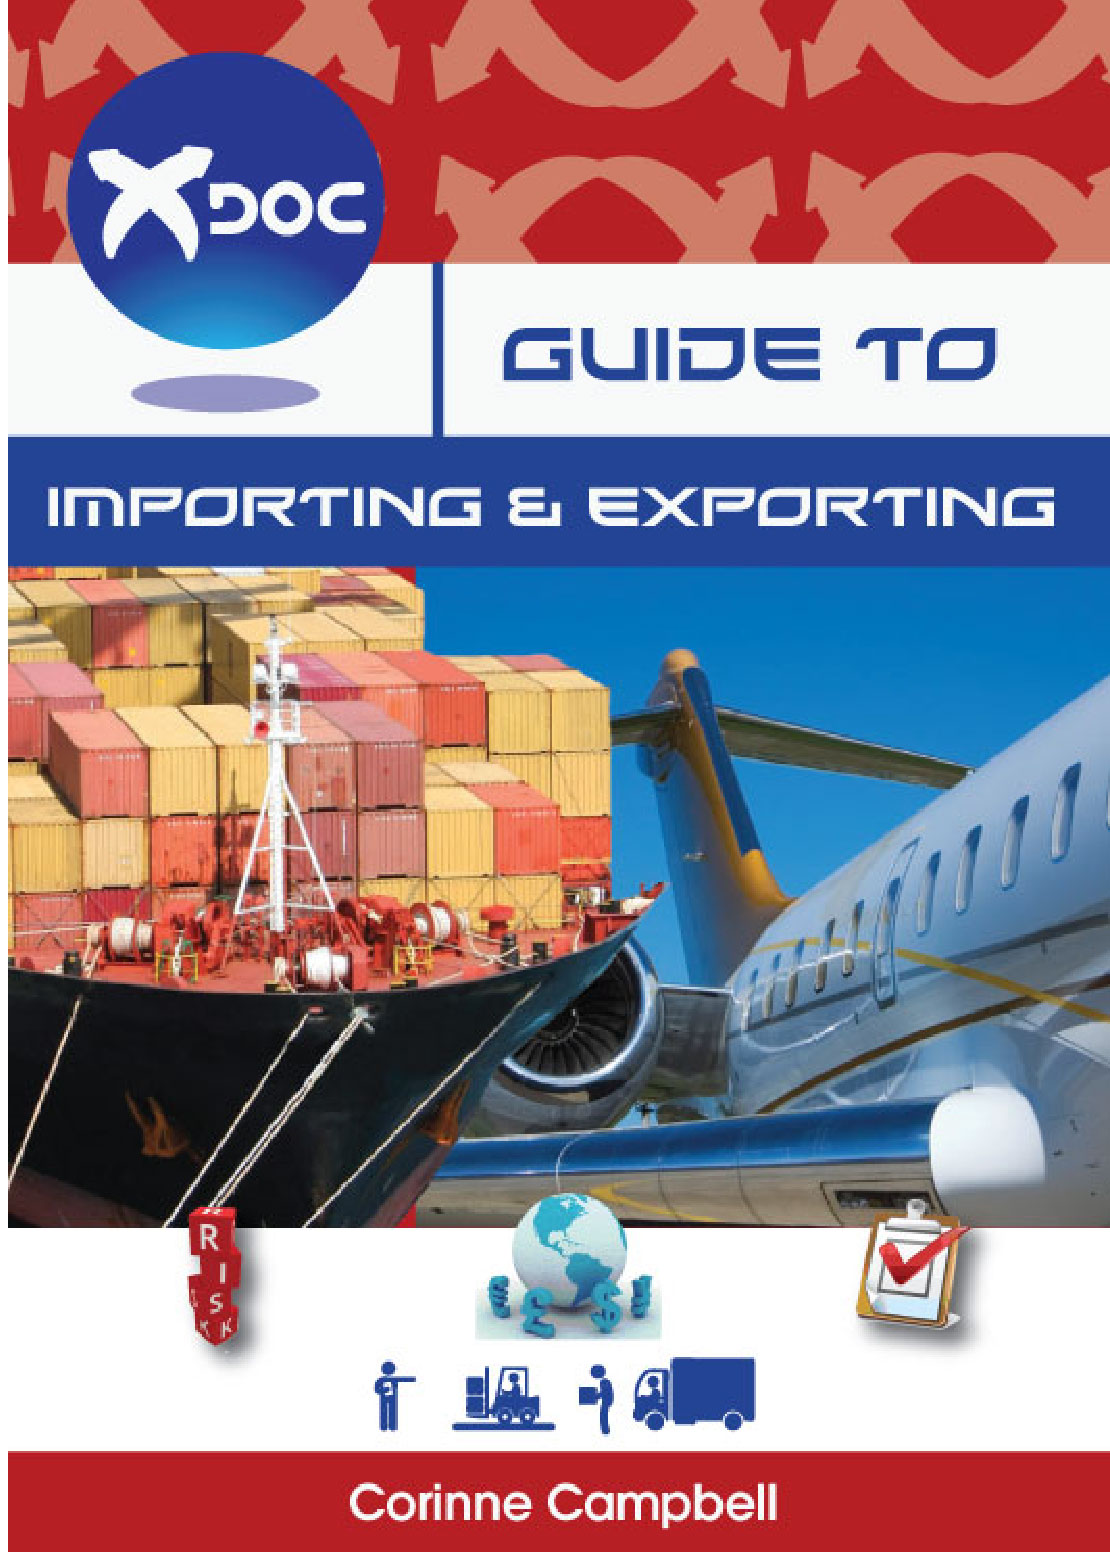 Guide-to-Importing-and-Exporting low res-01